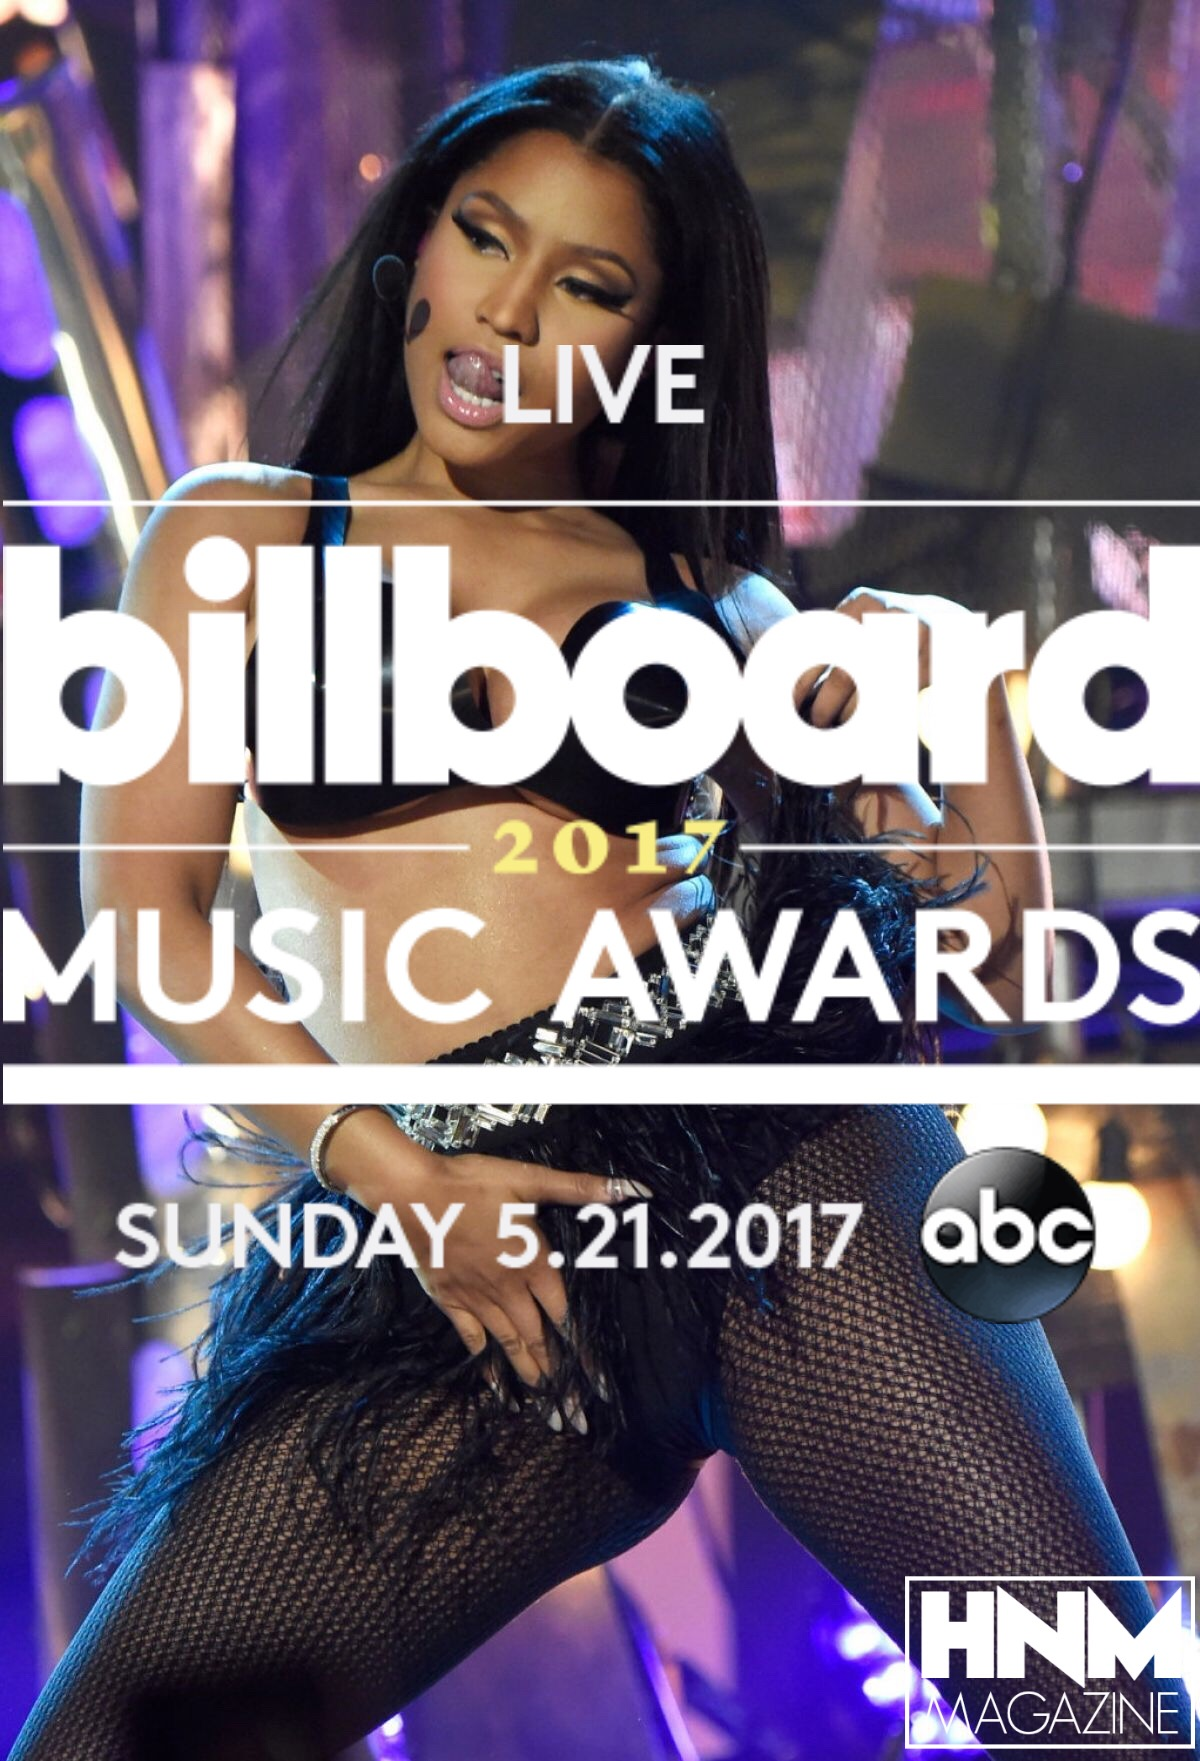 Nicki Minaj nominée aux Billboard Music Awards 2017 !